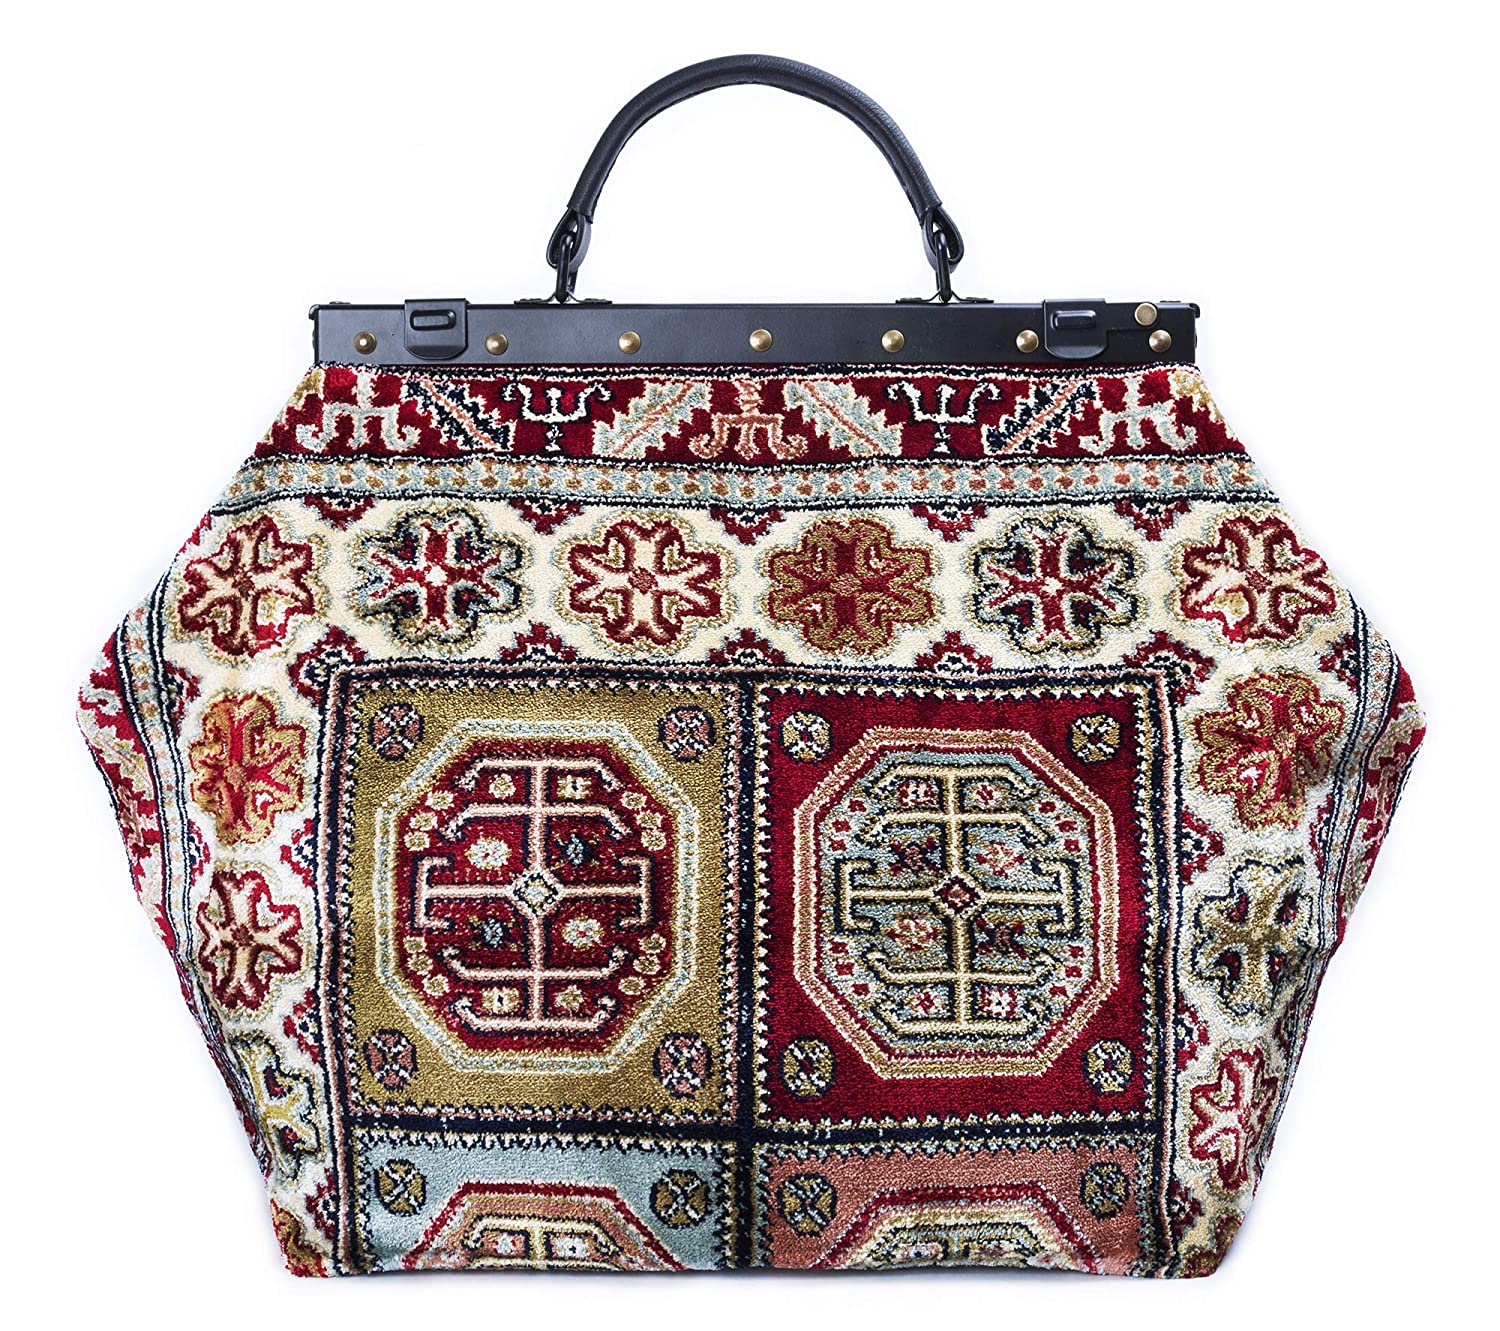 Carpet Bag SAC-VOYAGE Aztec Red - Magical Mary Poppins Vintage-Style Carpet Bag with leather handle and detachable strap.